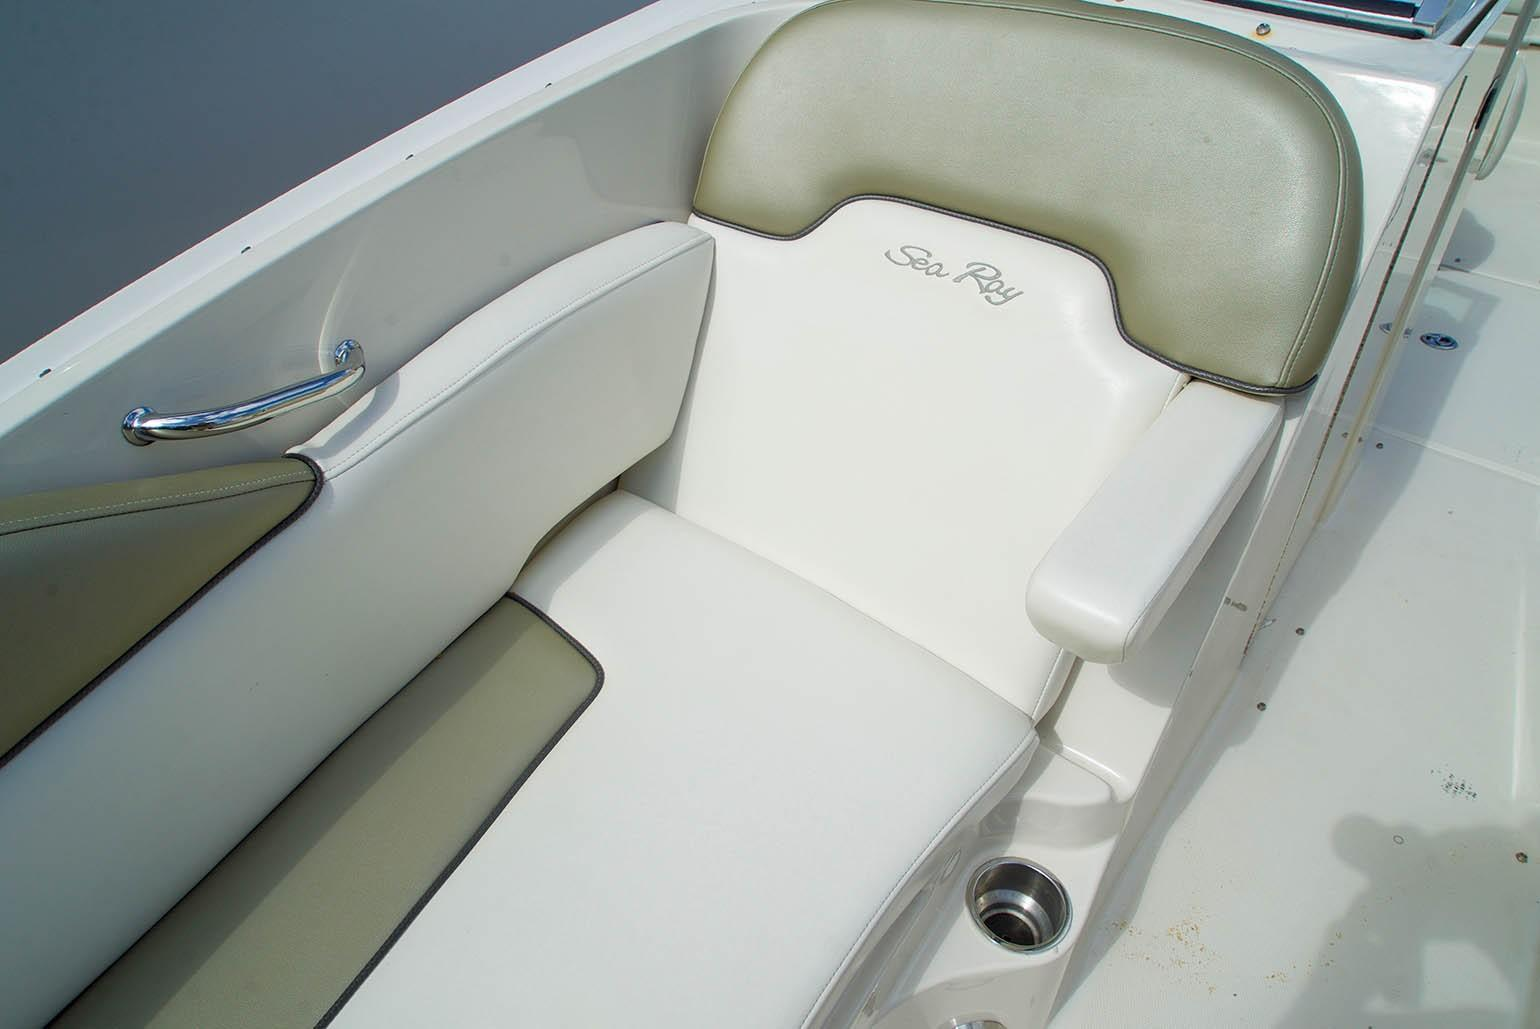 Sea Ray 260 Sundeck - Bow Seat Starboard